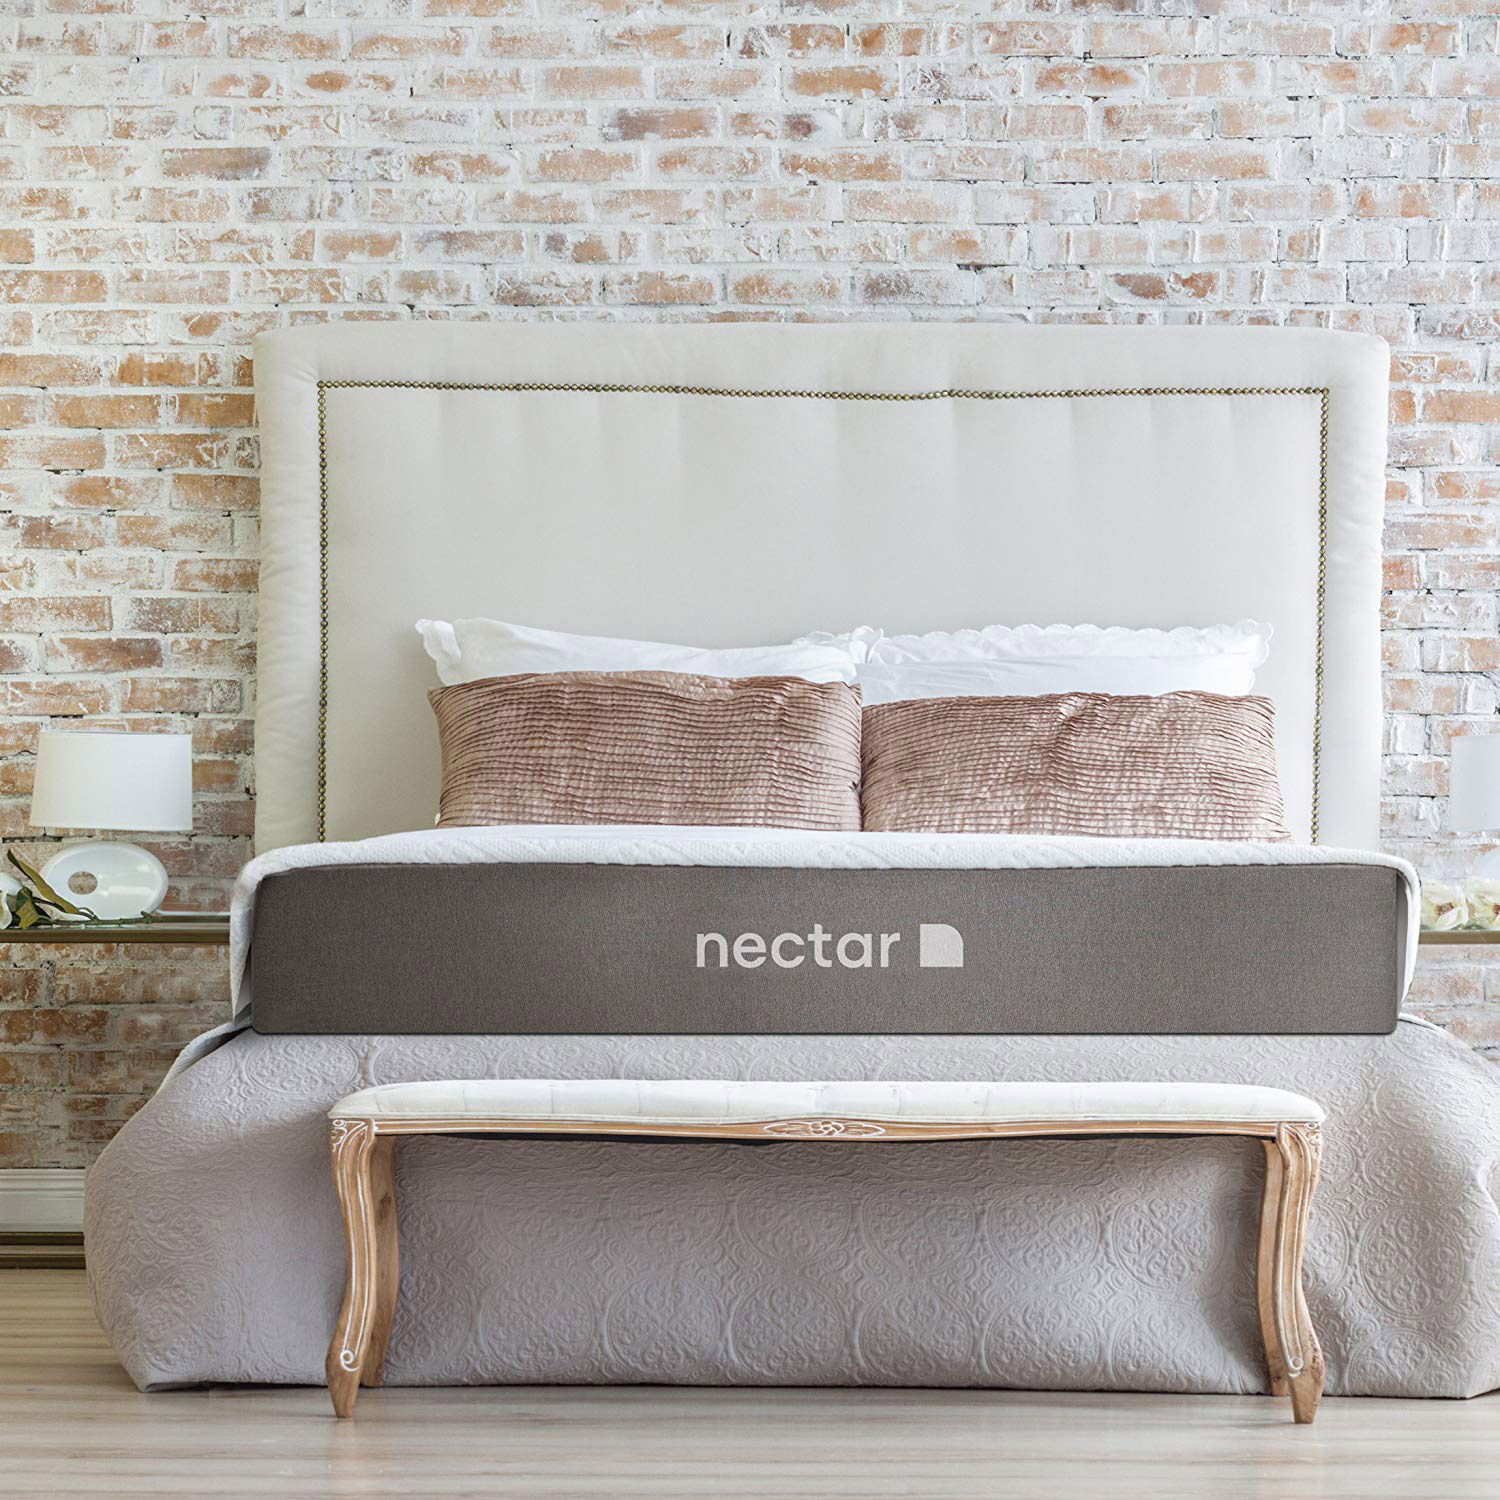 Sleek pillow top mattress and pillows